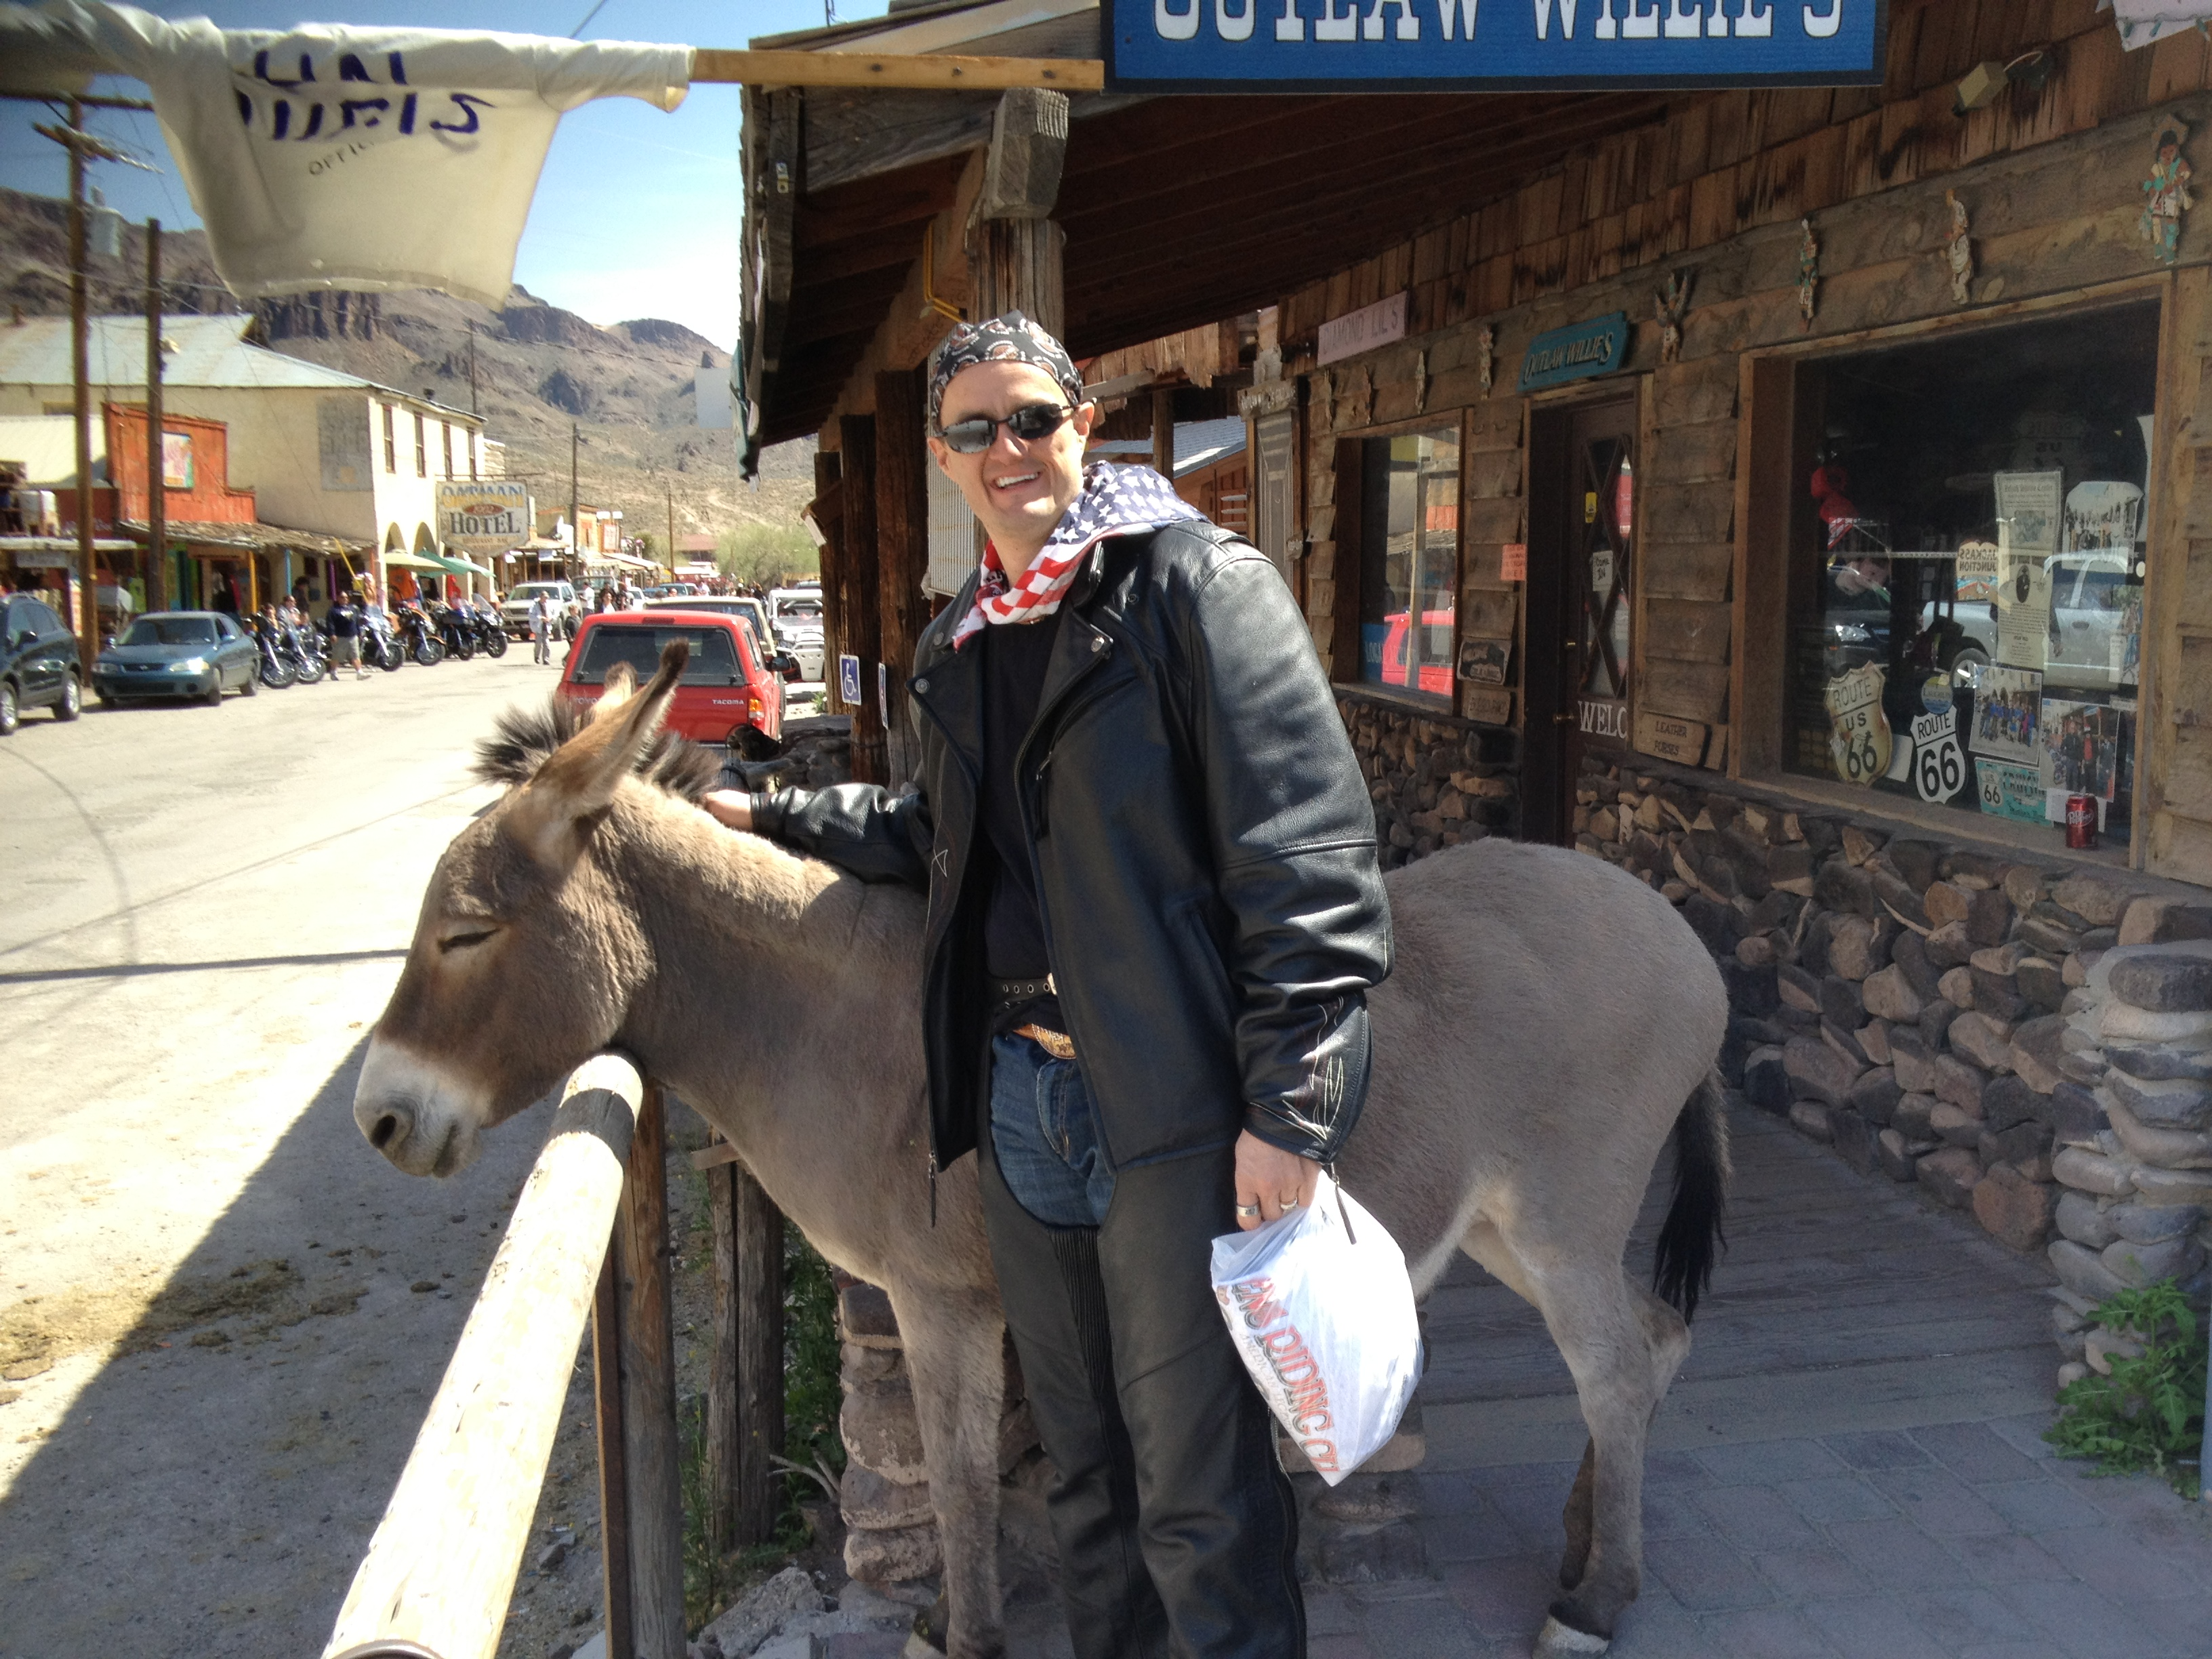 Gary Fales at Oatman, Arizona